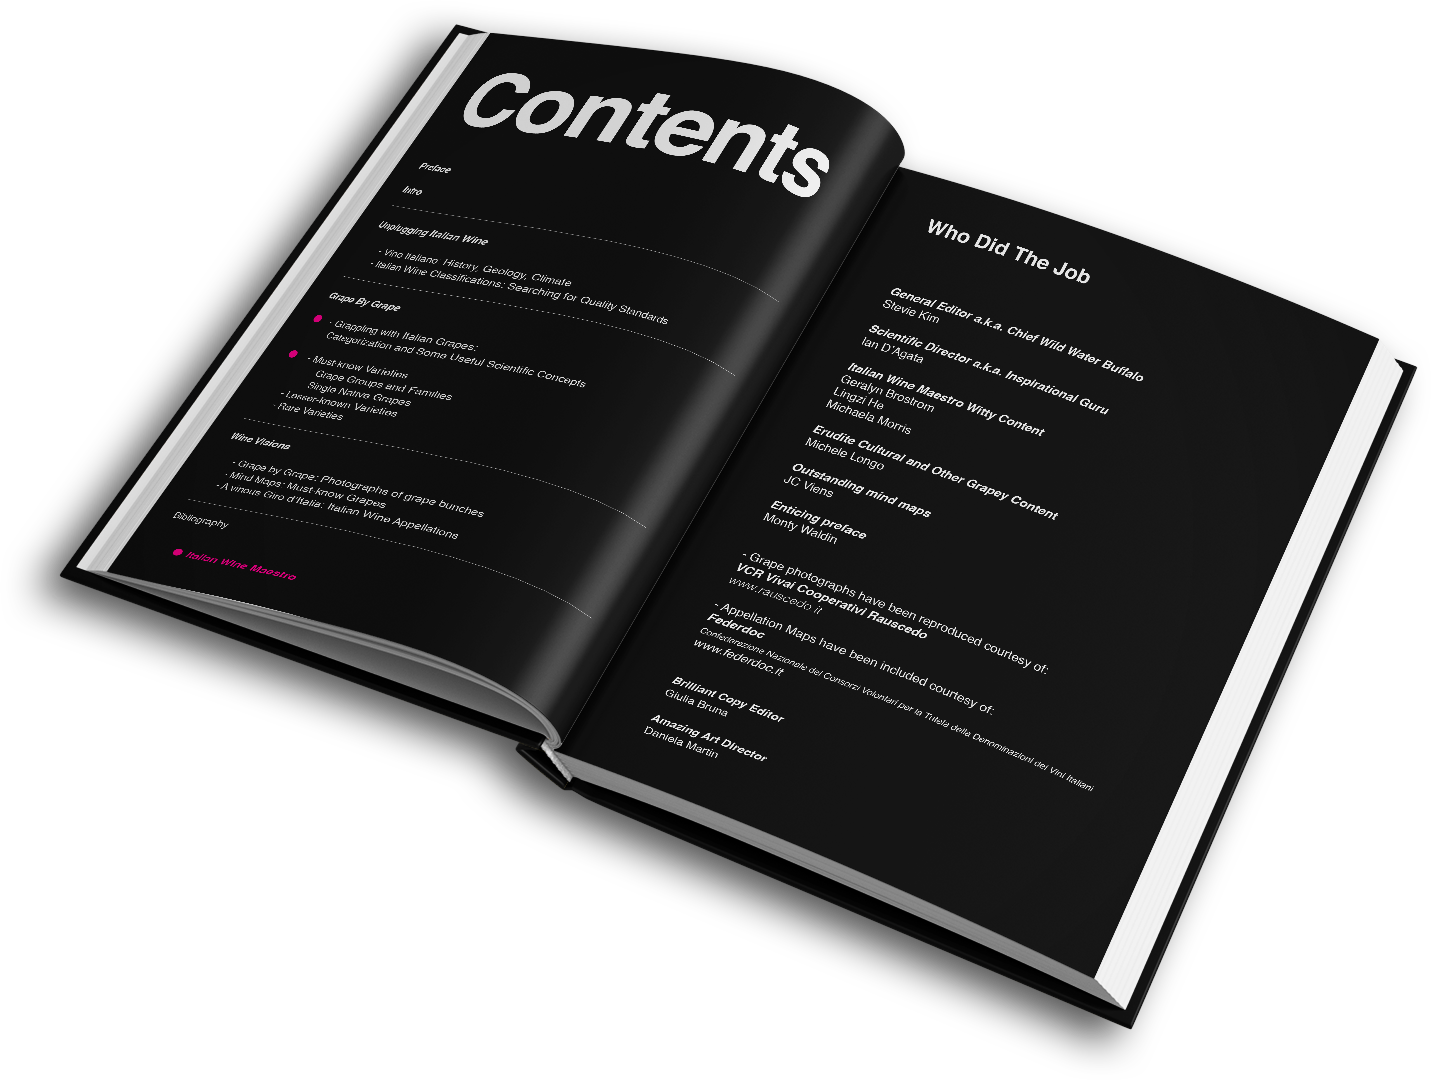 Book Contents full